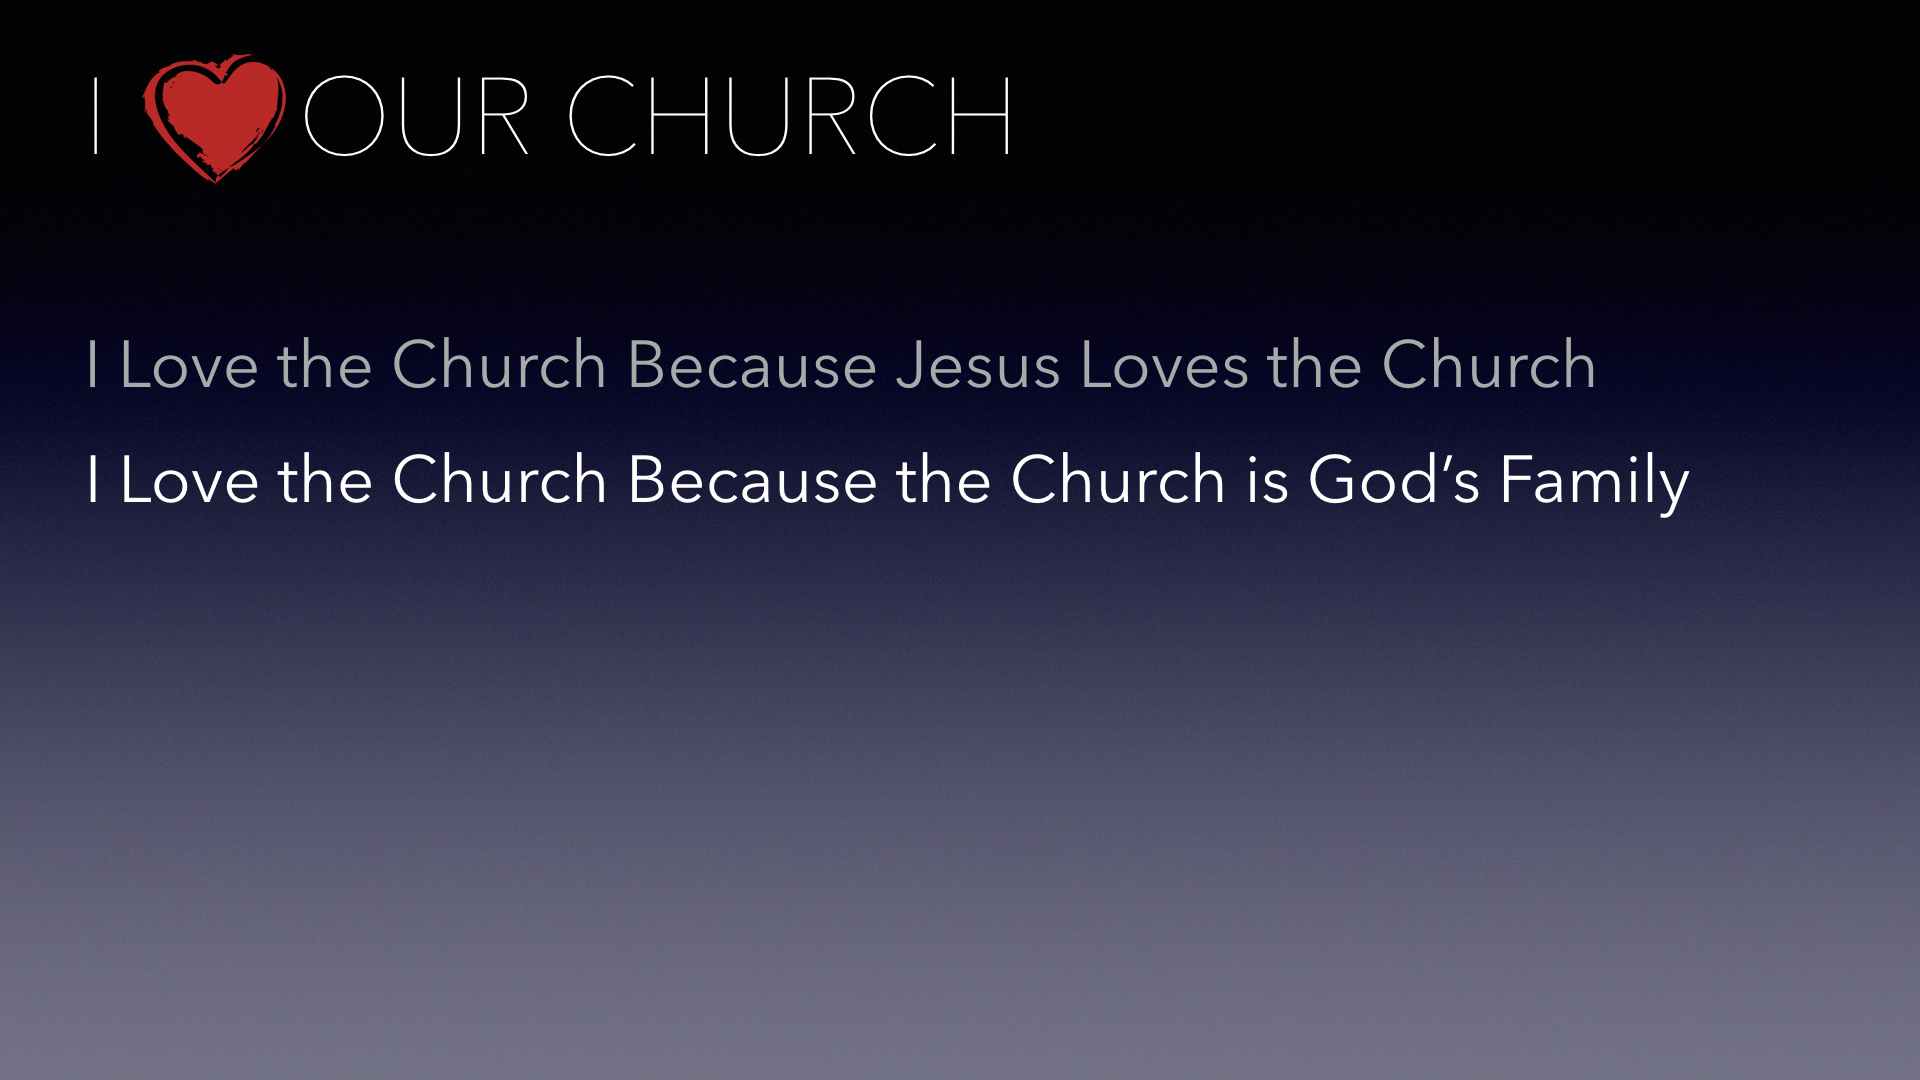 i-love-our-church-007